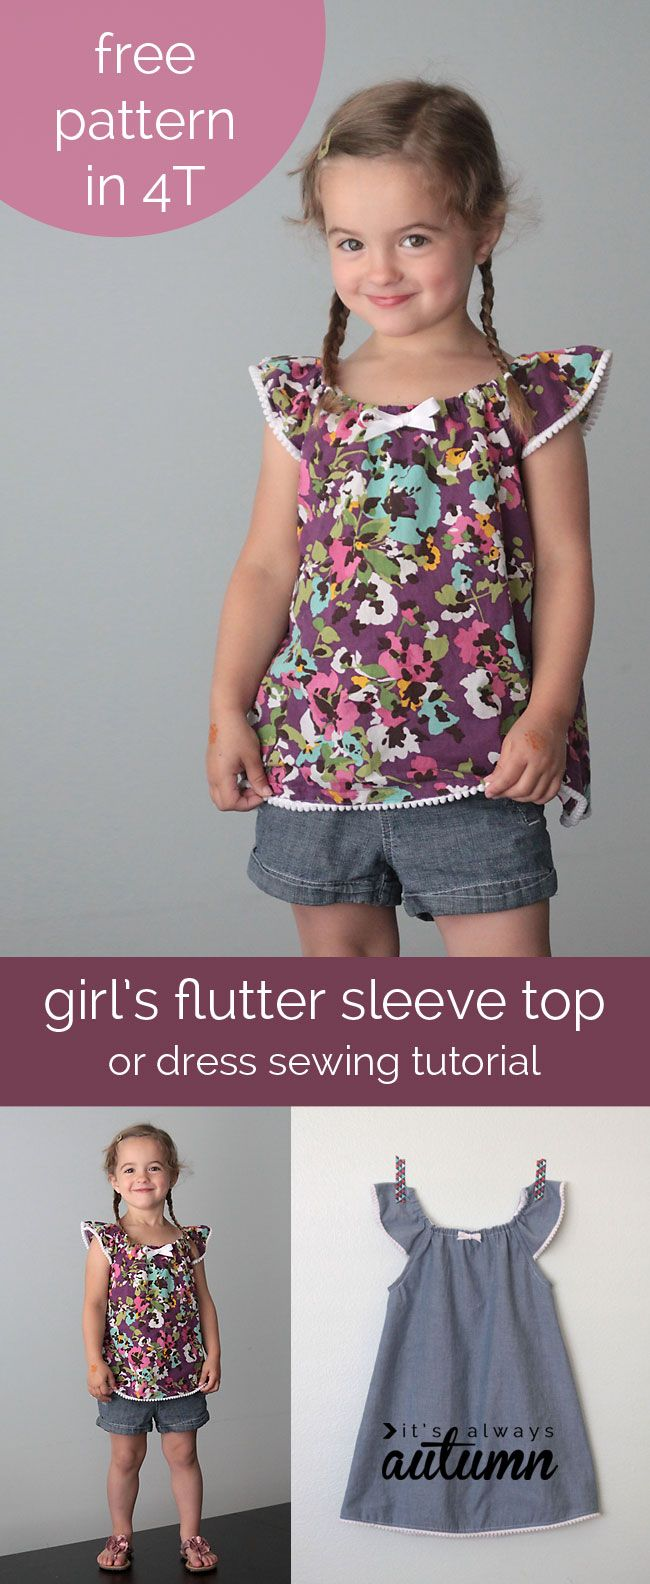 Girl's flutter sleeve dress or top: sewing tutorial and free pattern in size 4T #sew #SewforGirl